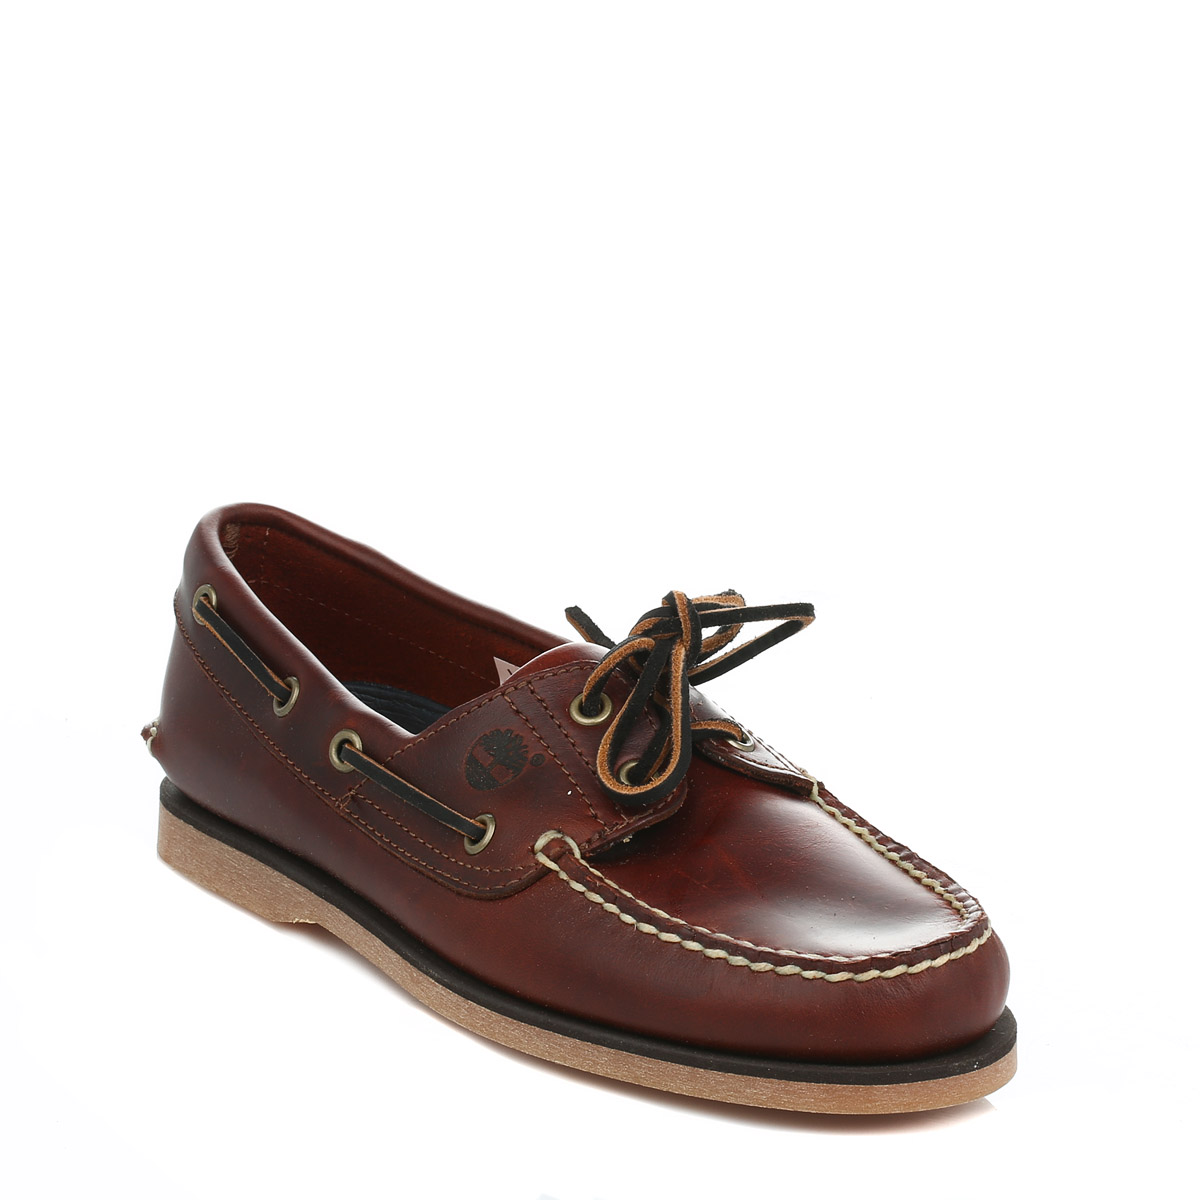 Details about Timberland Mens Classic Dark Brown Boat Shoes, Rootbeer SM, Leather, Lace Up